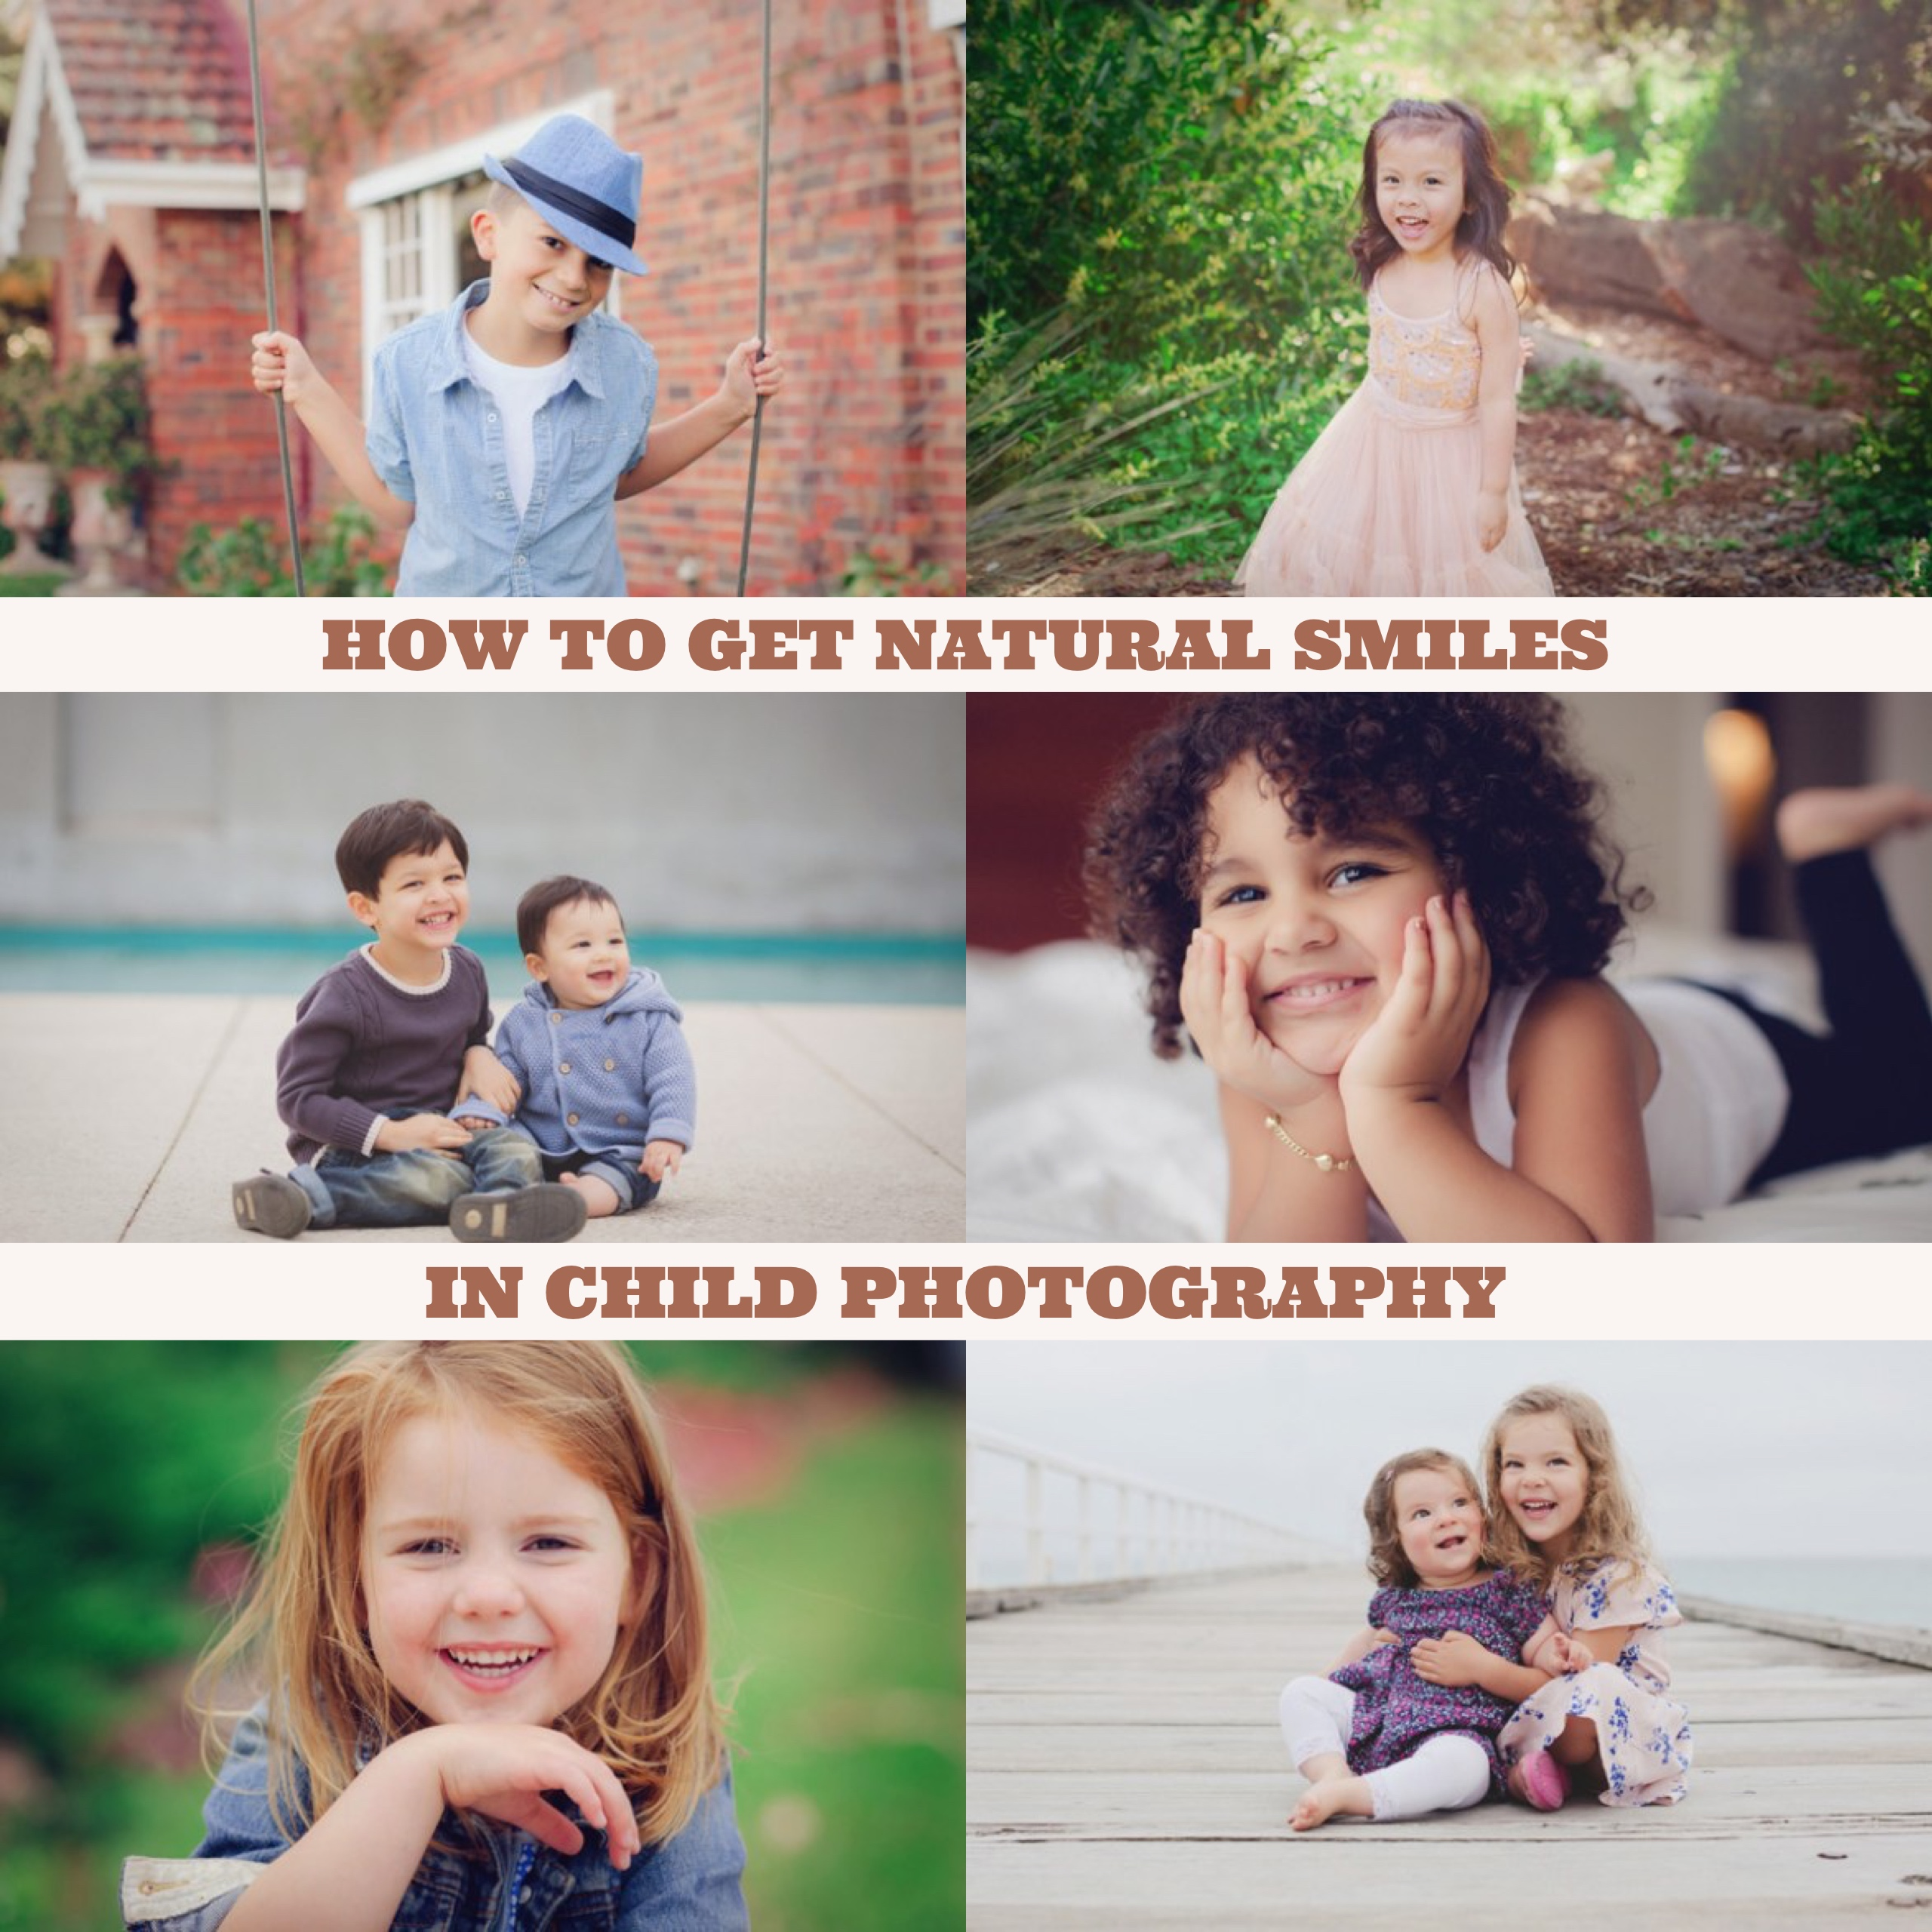 How to Get More Natural Smiles in Child Photography